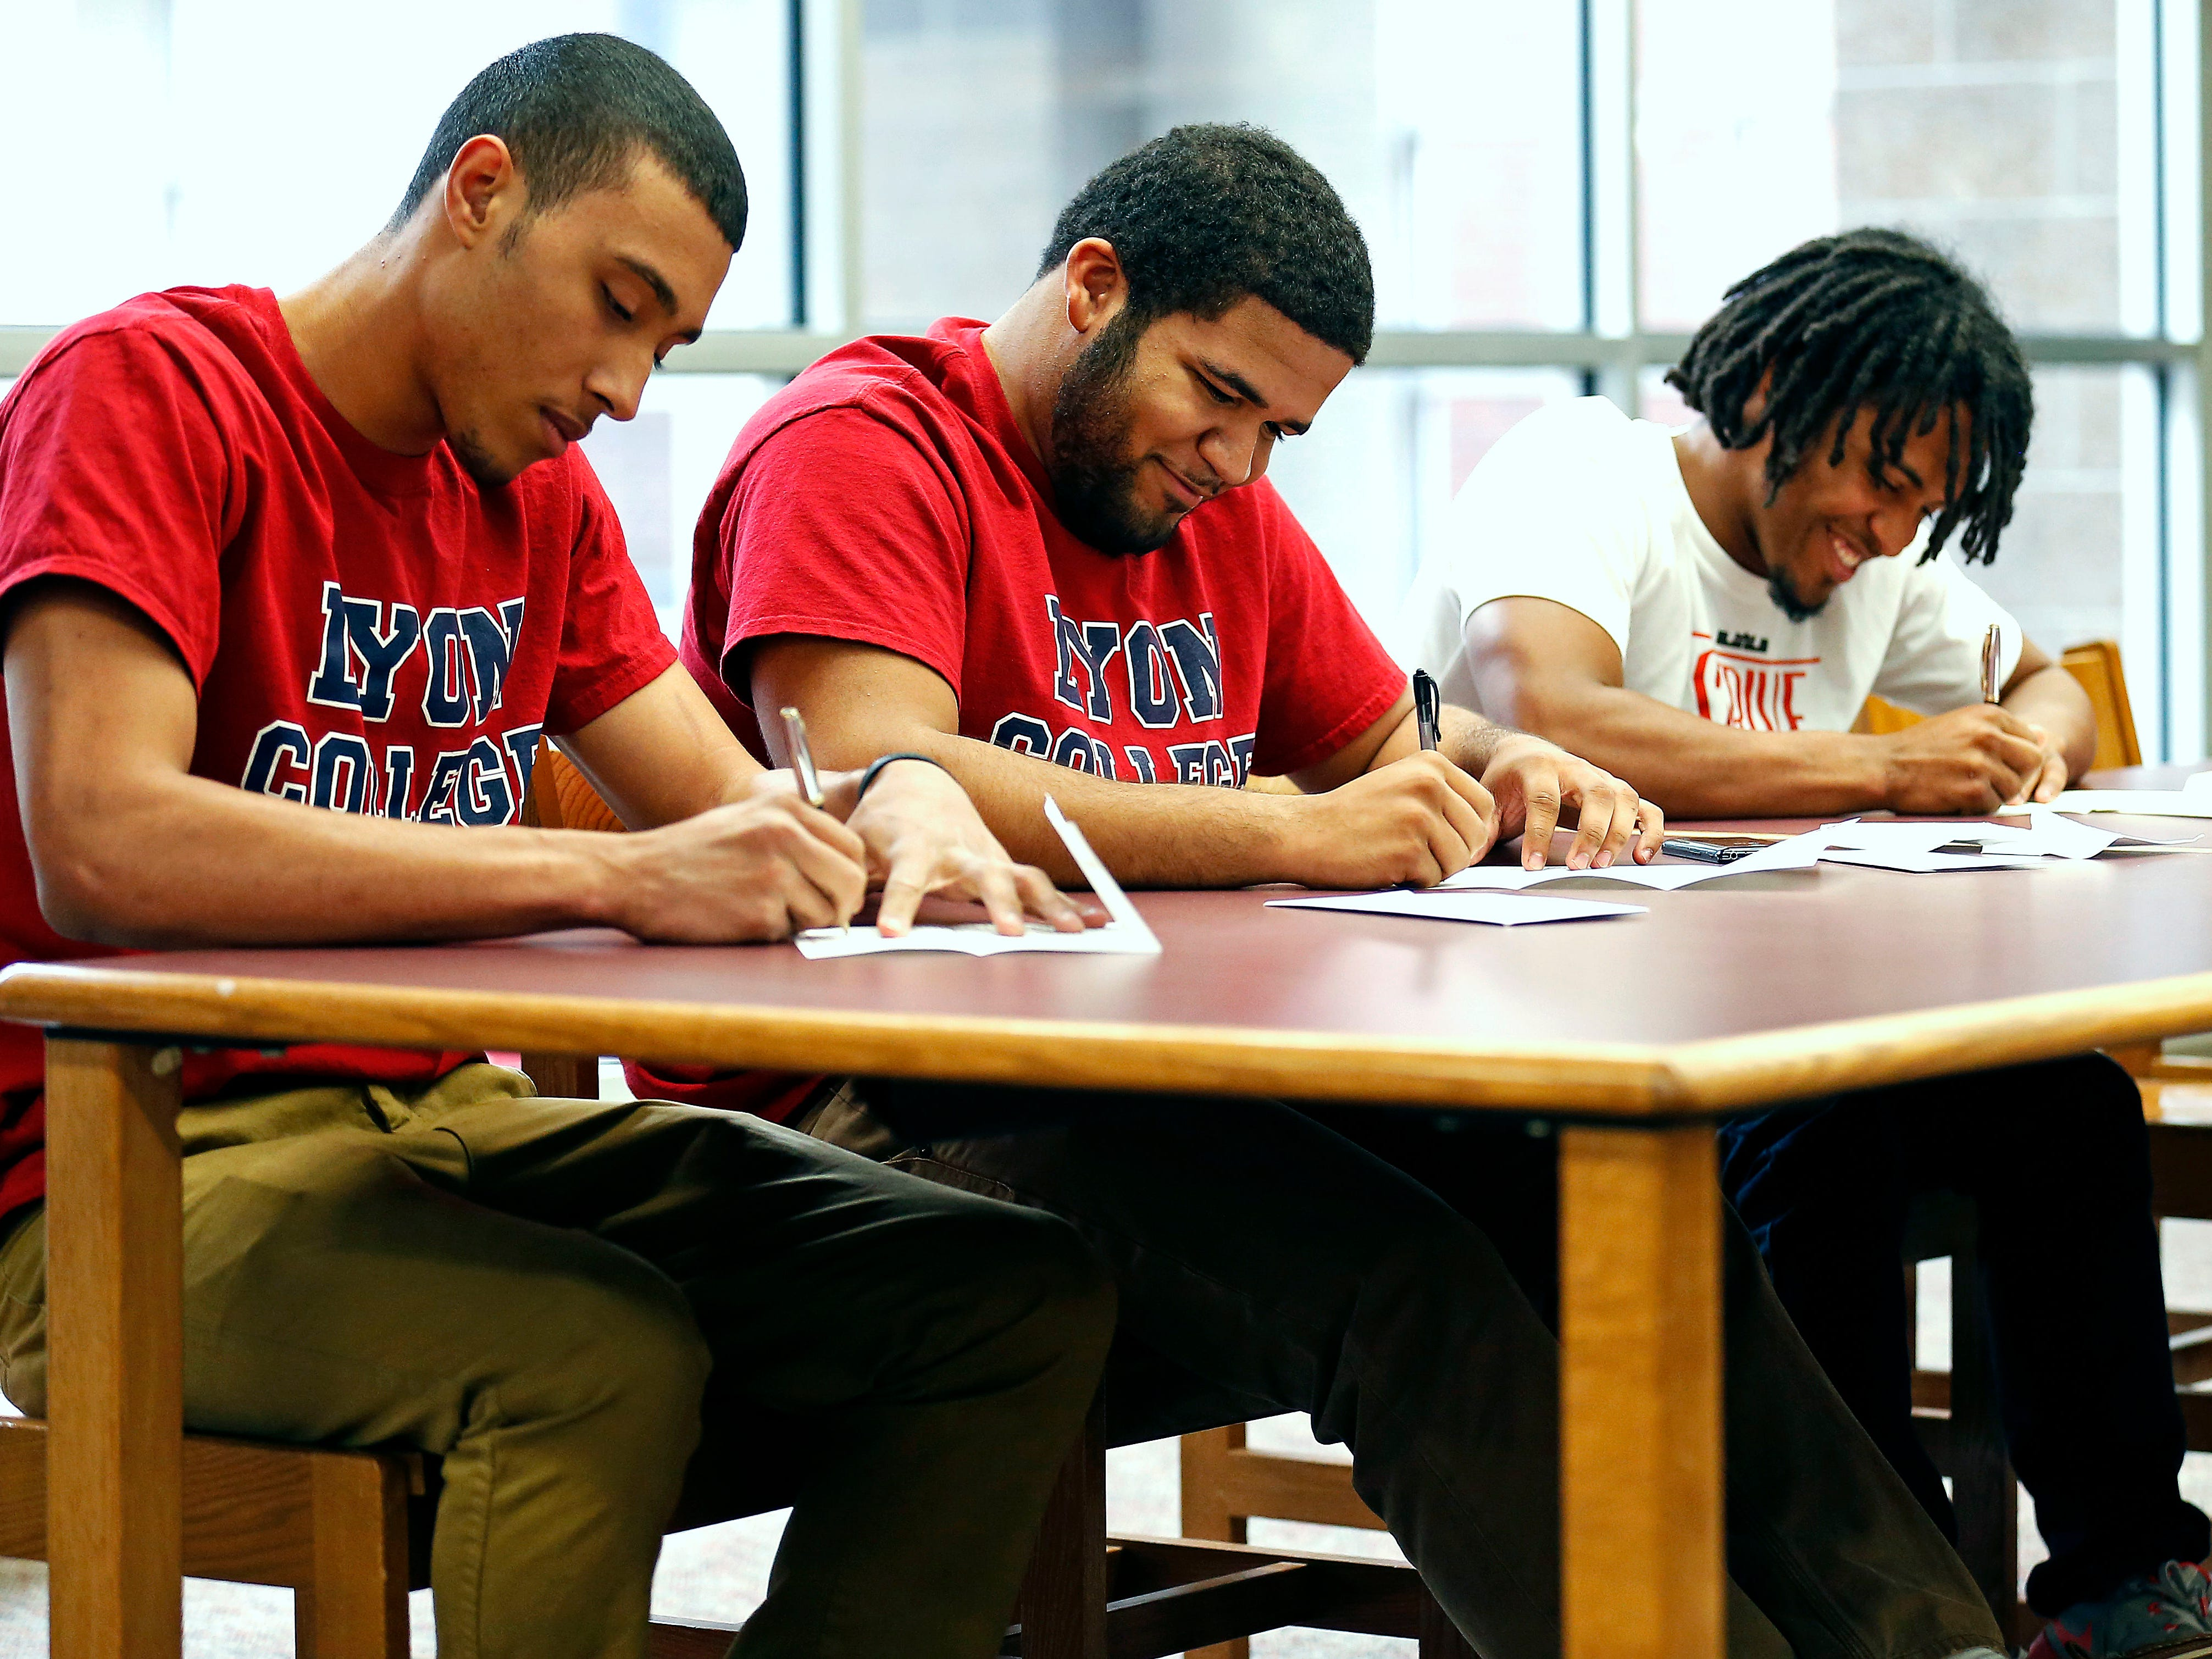 Central High School seniors (from left) Isaiah Holyfield, Jordan Johnson and Javiaun King sign letters of intent at the Central High School library on Tuesday as they commit to attend and play football for Lyon College starting next fall.